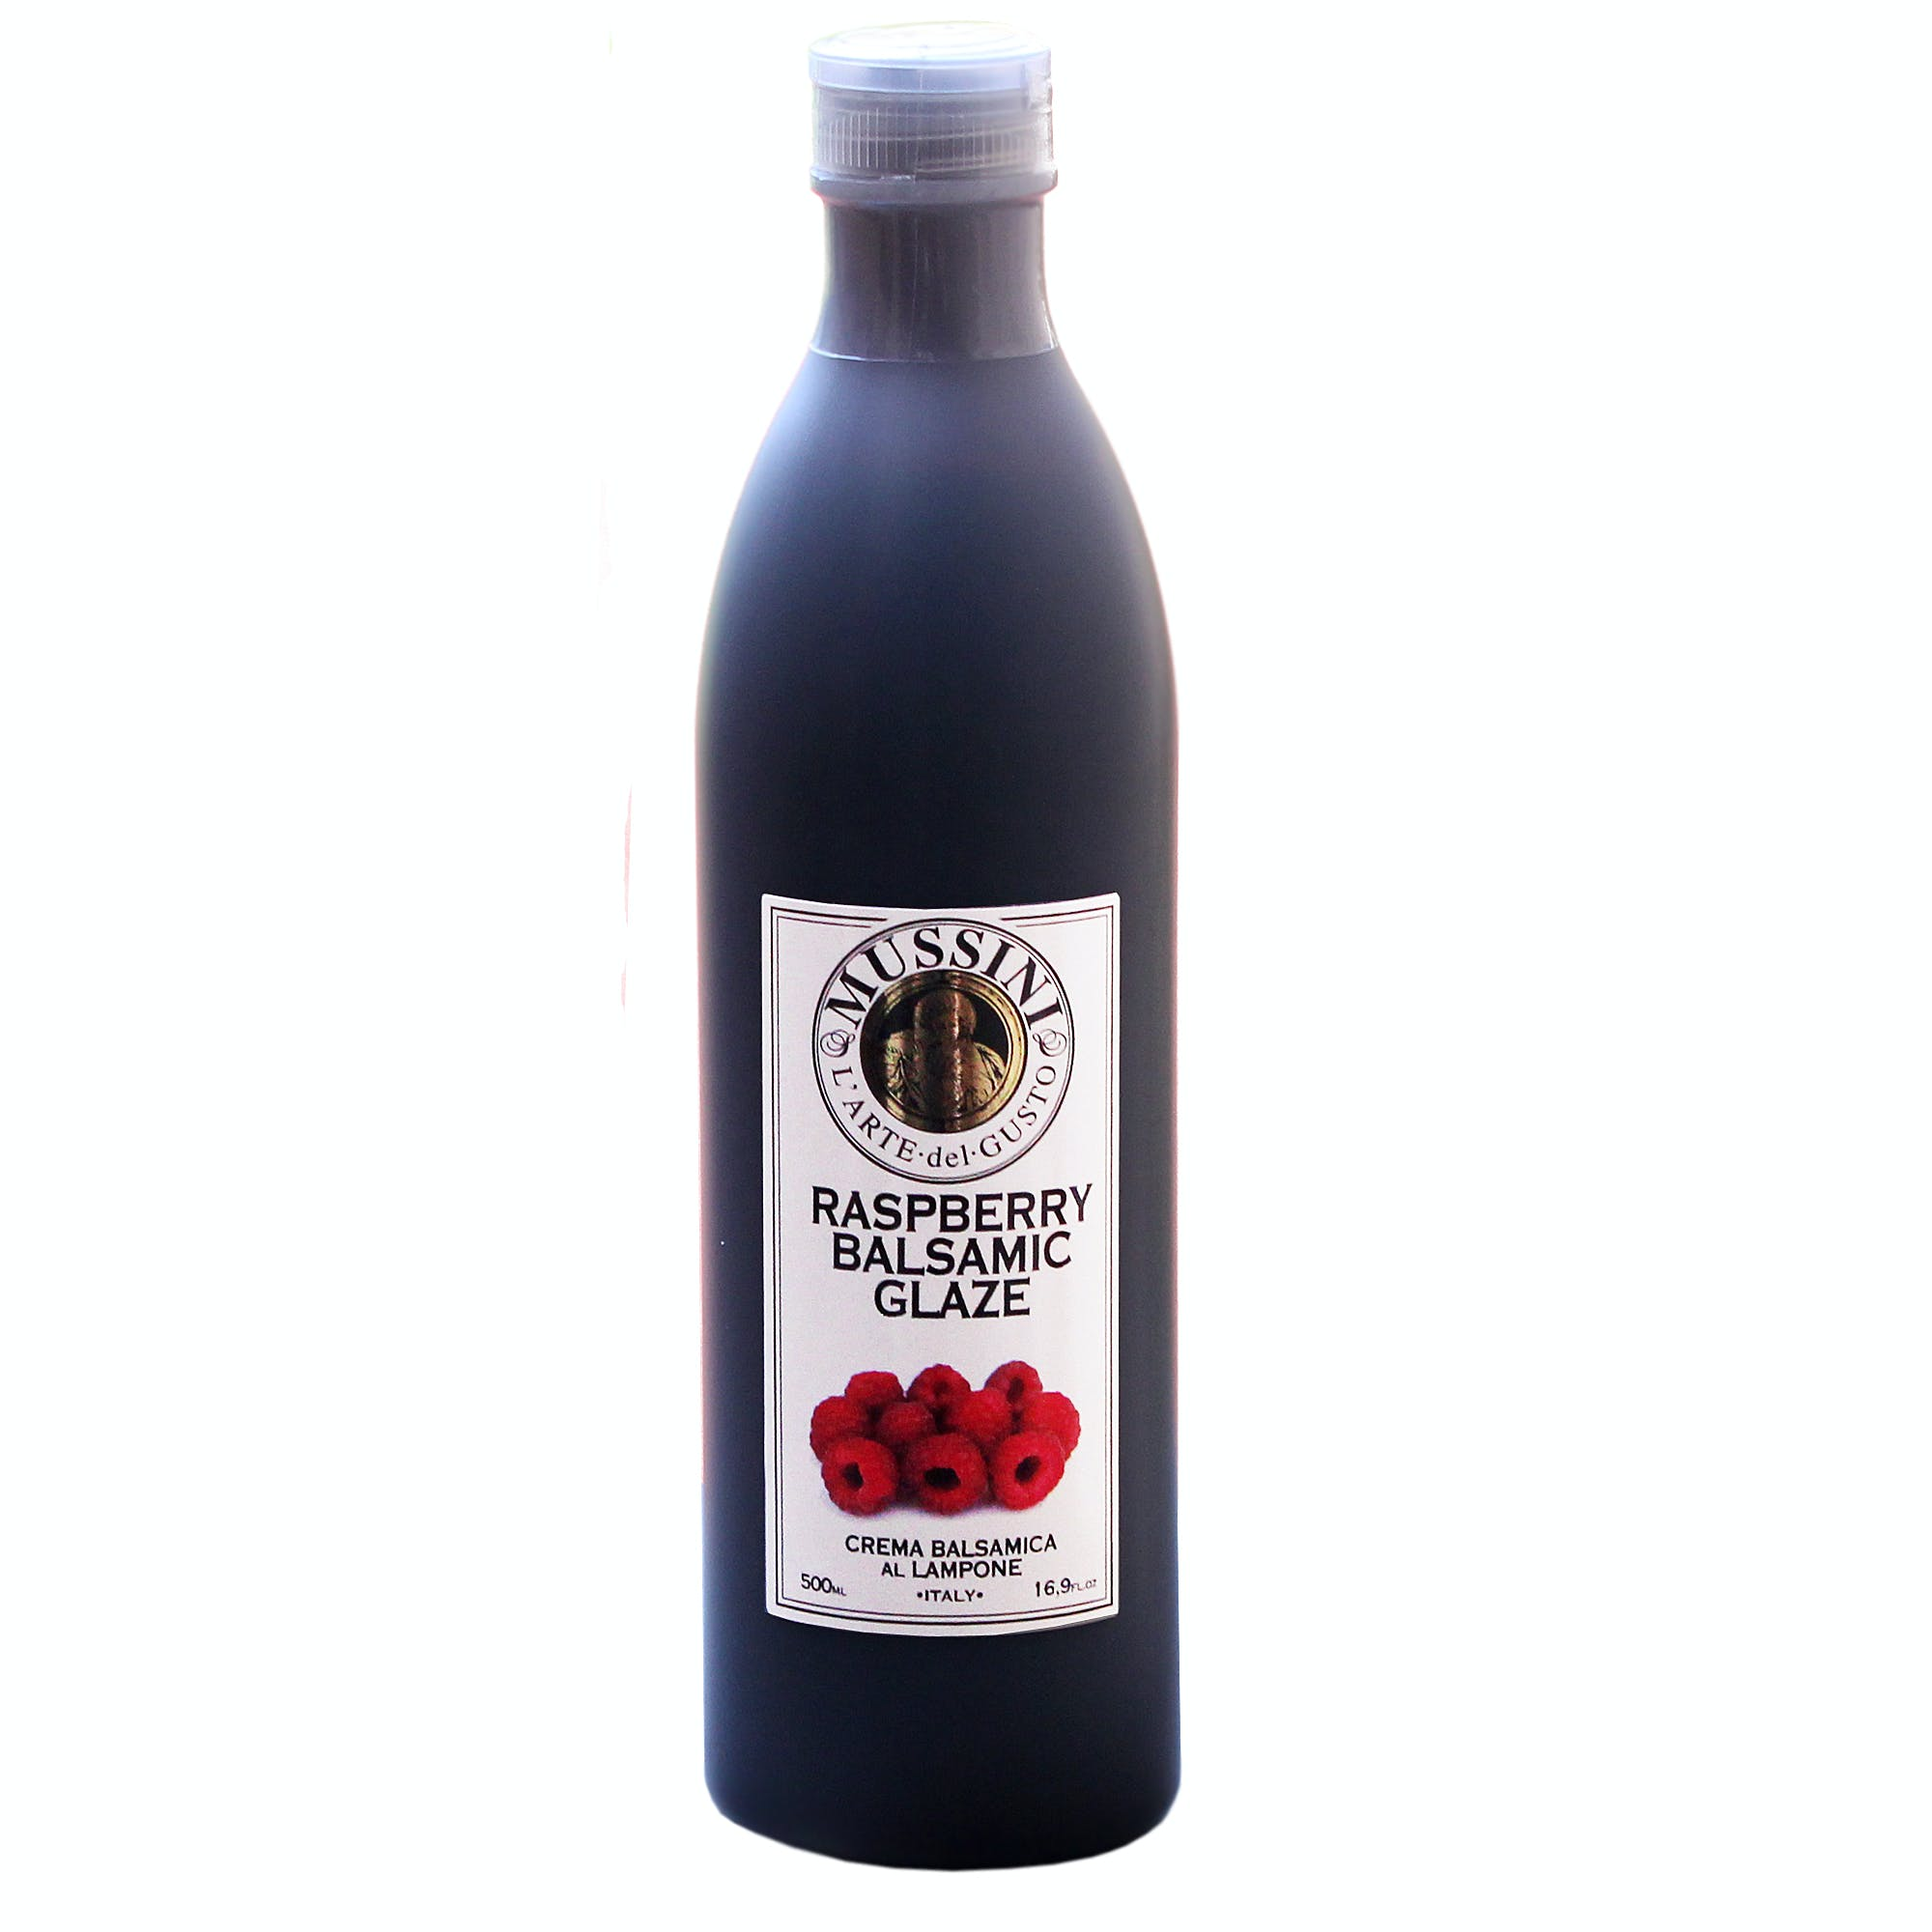 Italian Raspberry Balsamic Glazes From Mussini, 16.9 Ounces Balsamic Vinegar sold by M5 Corporation